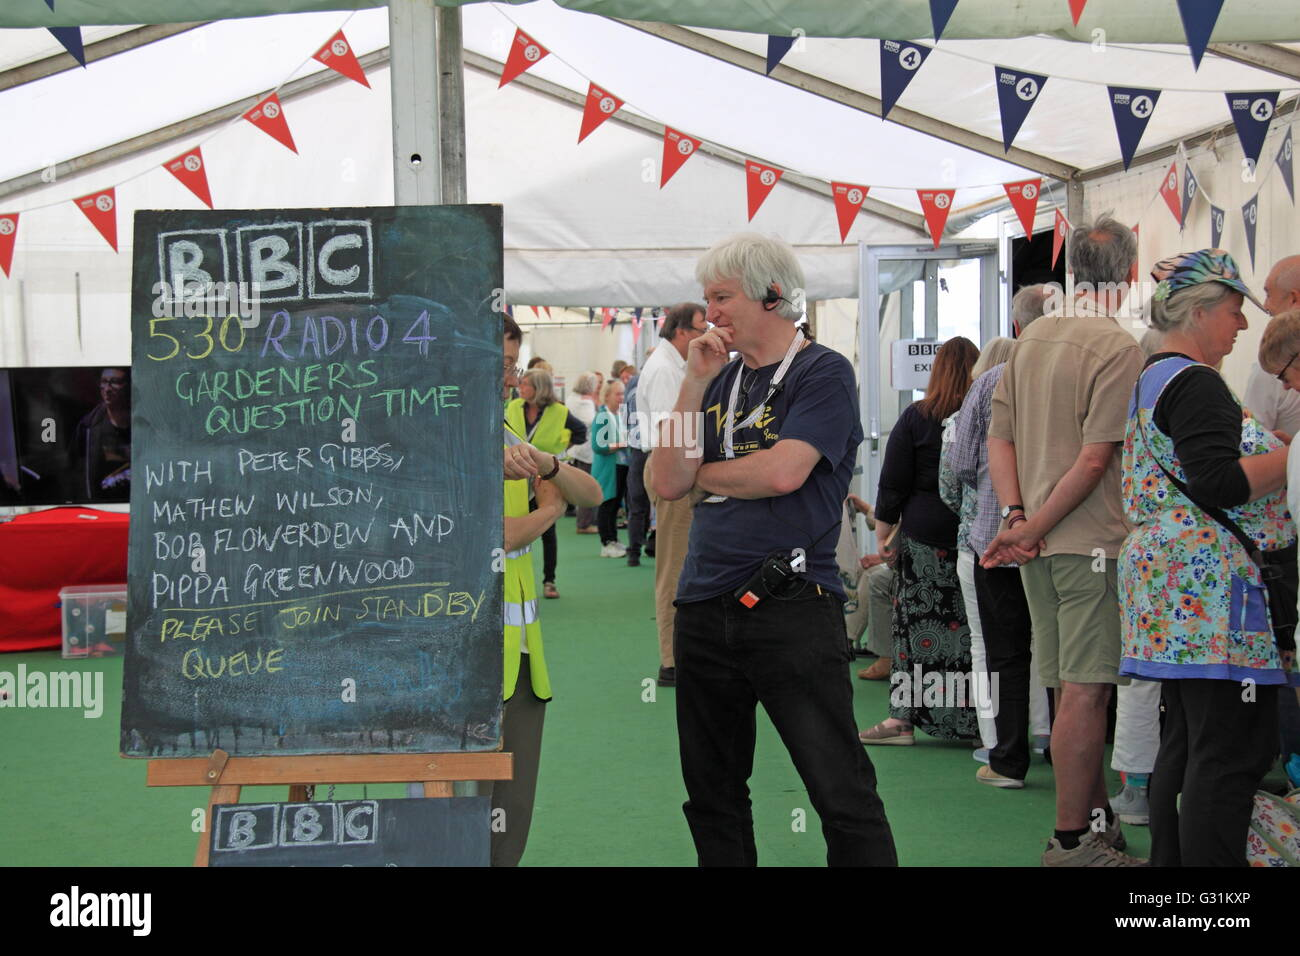 BBC Gardeners Question Time, Hay Festival 2016, Hay-on-Wye, Brecknockshire, Powys, Wales, Great Britain United Kingdom - Stock Image